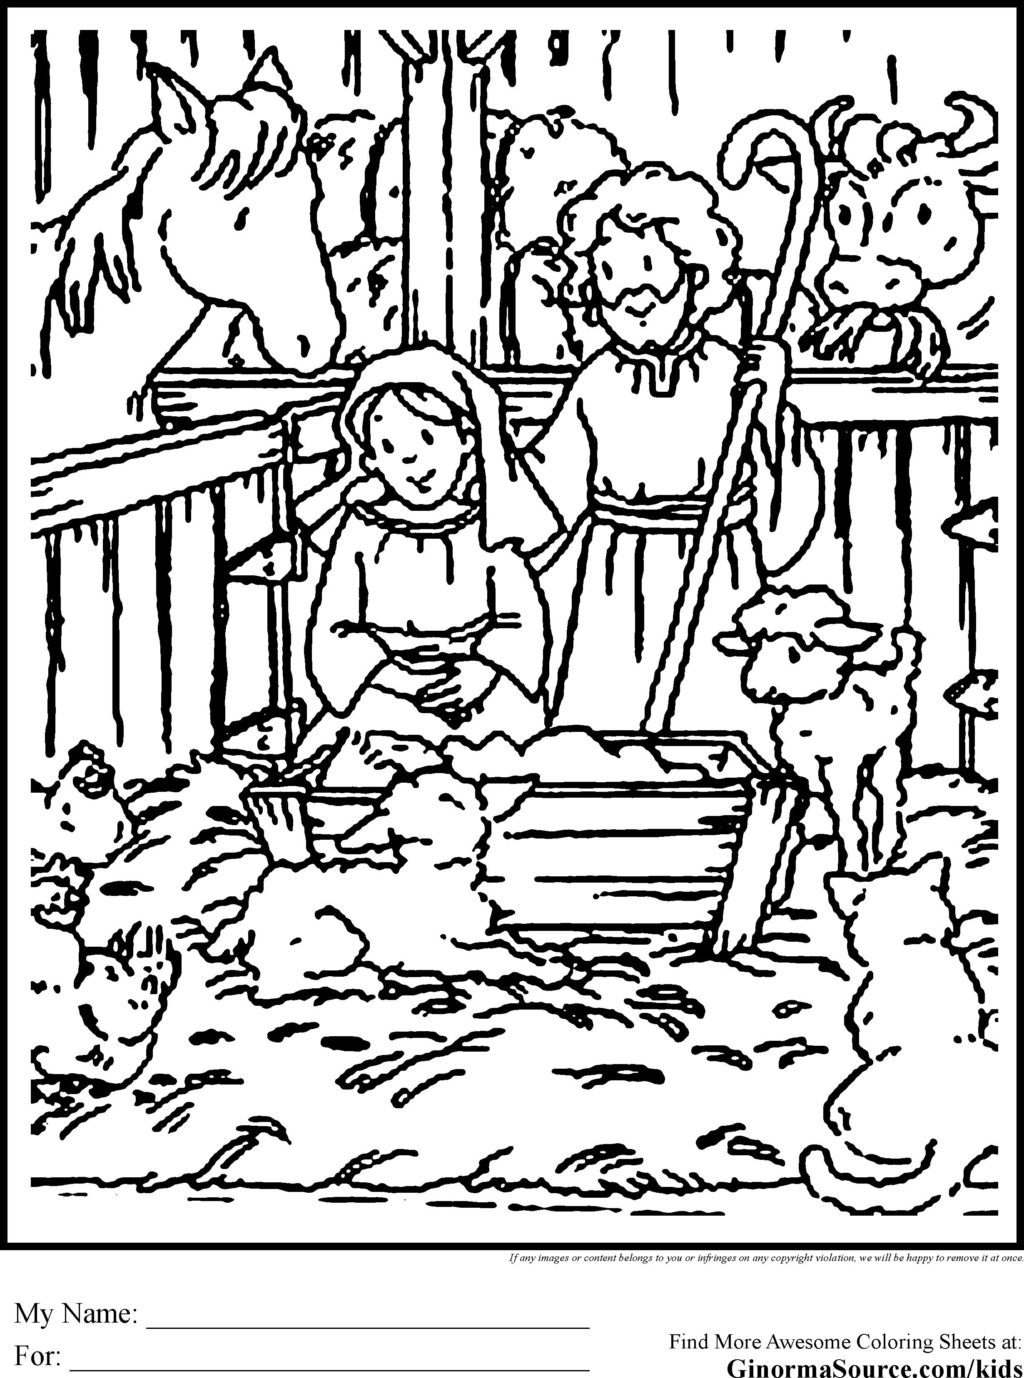 Jesus Christmas Coloring Pages Coloring Book World Nativity Scene For Coloring Photo Ideas Ba